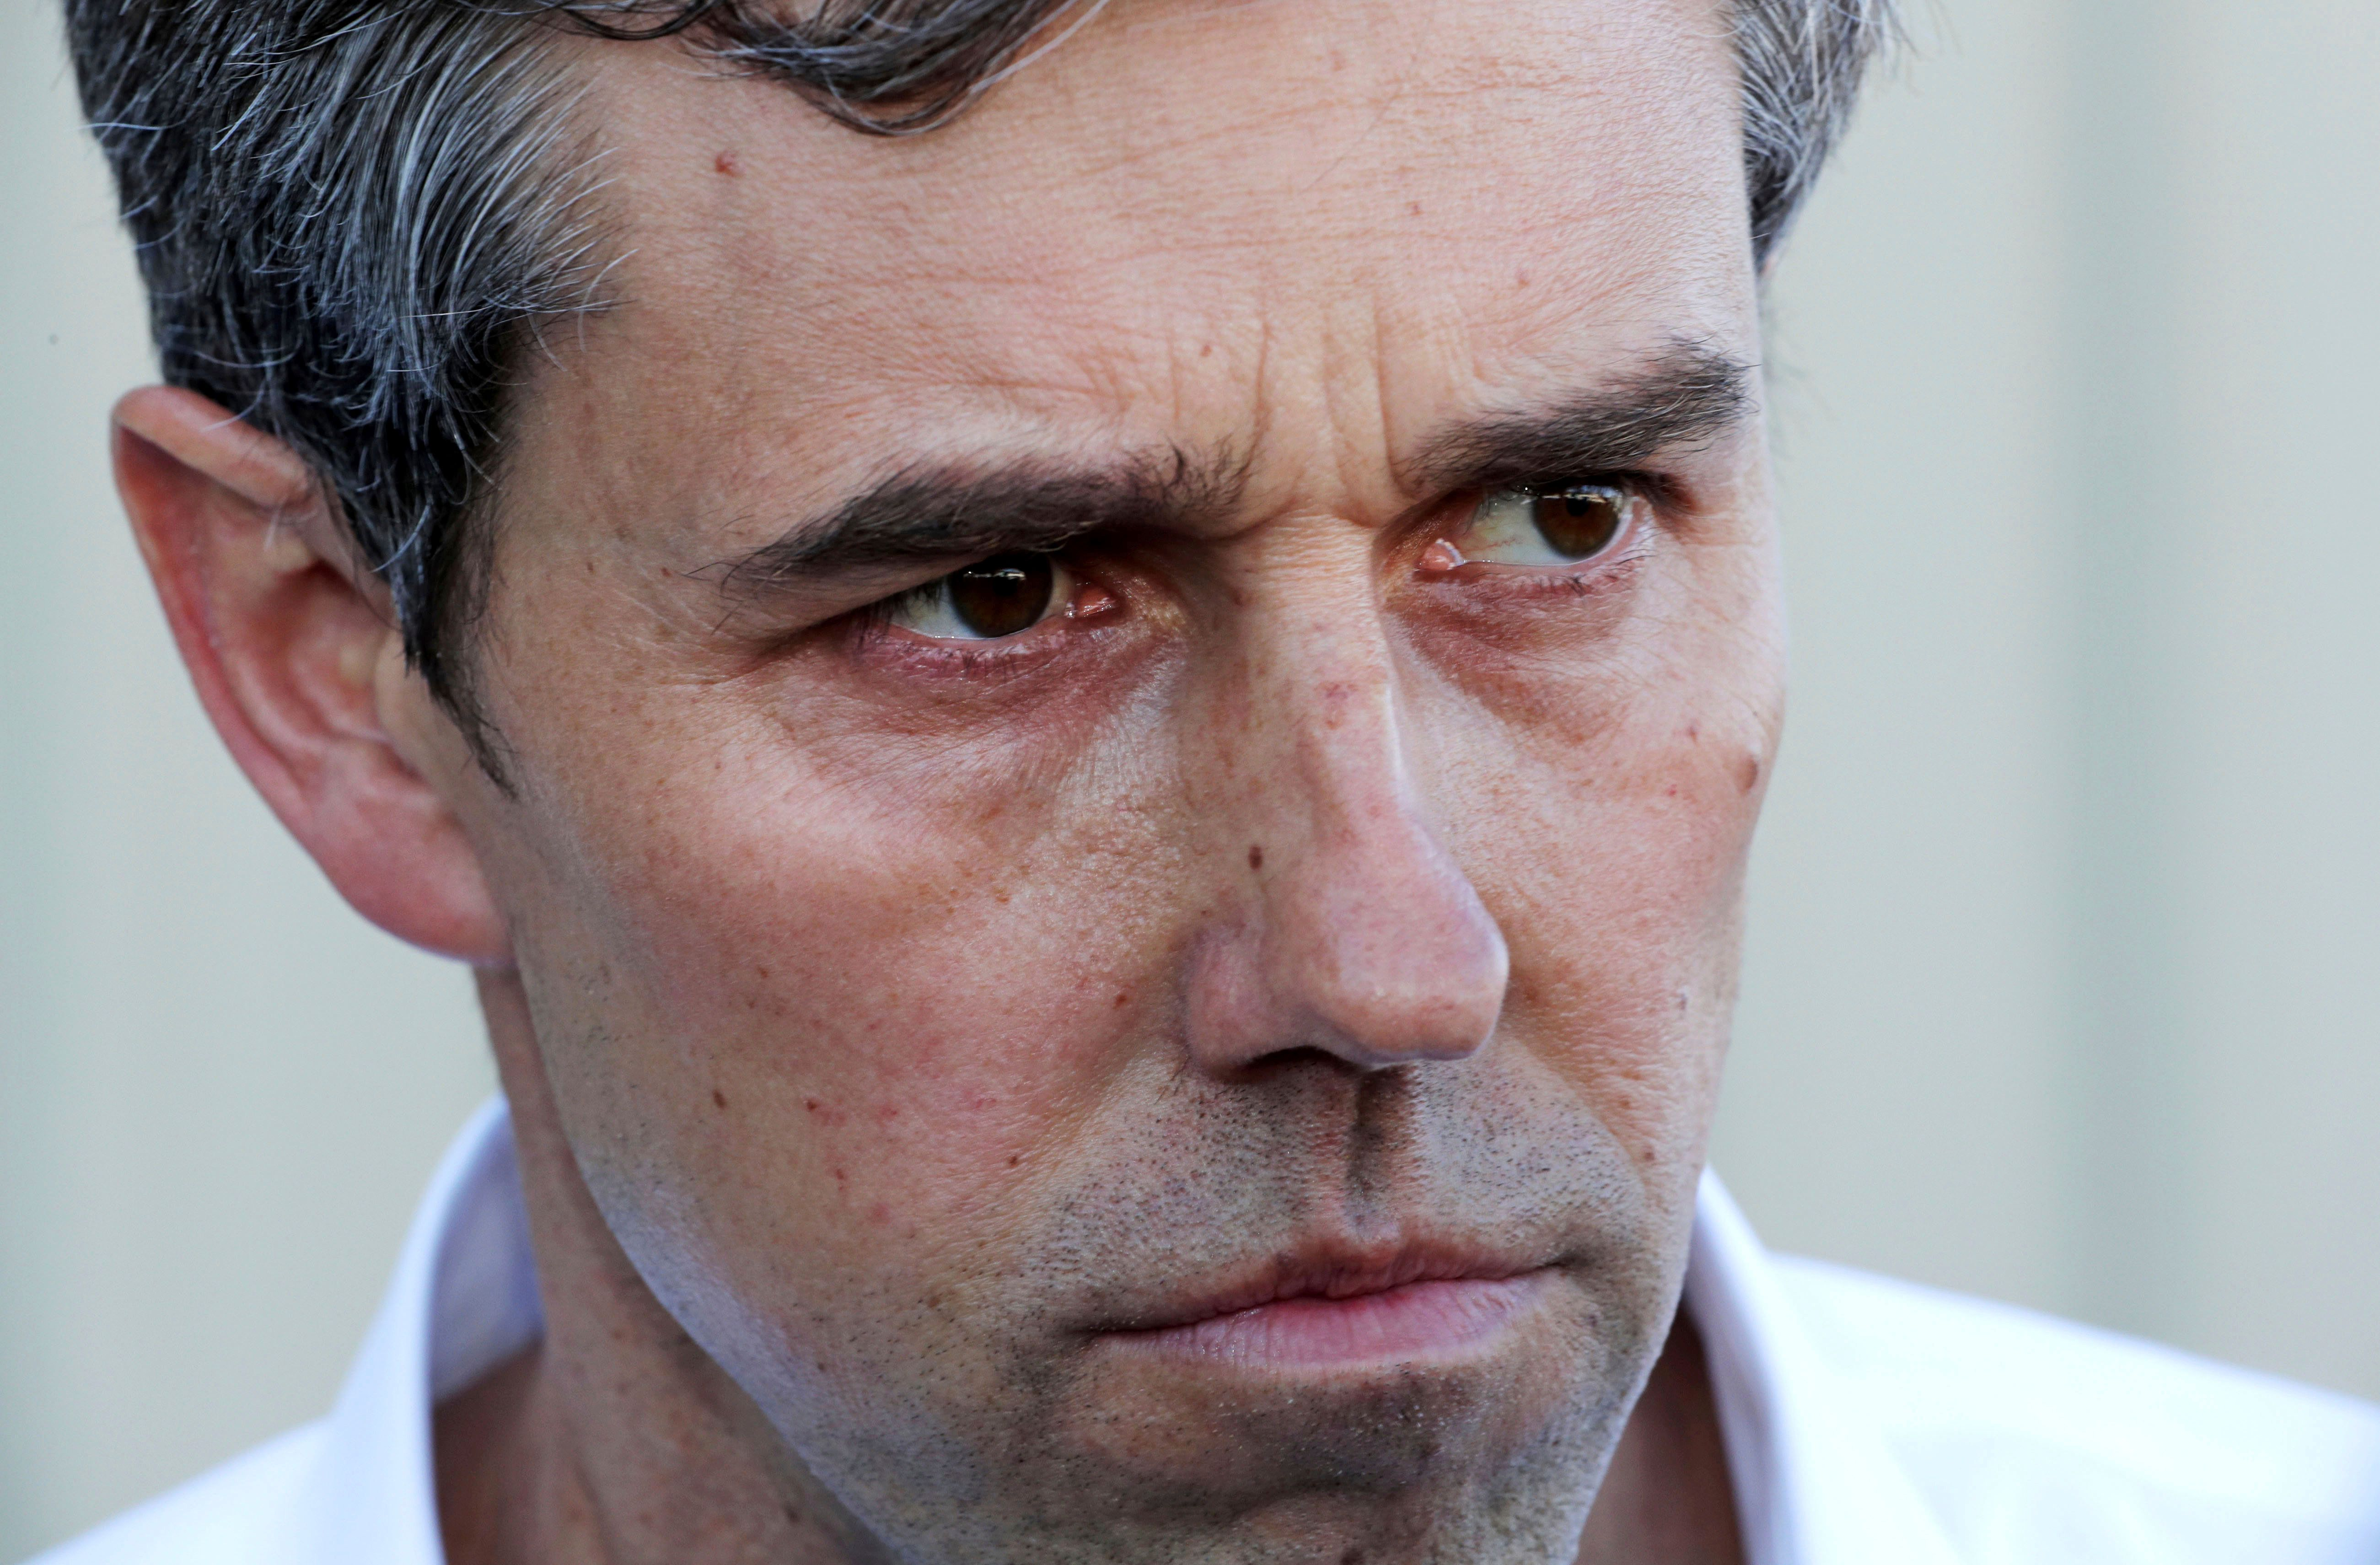 Beto O'Rourke Regrets Voting For Pro-Death Penalty Bill: 'That Was A Poor